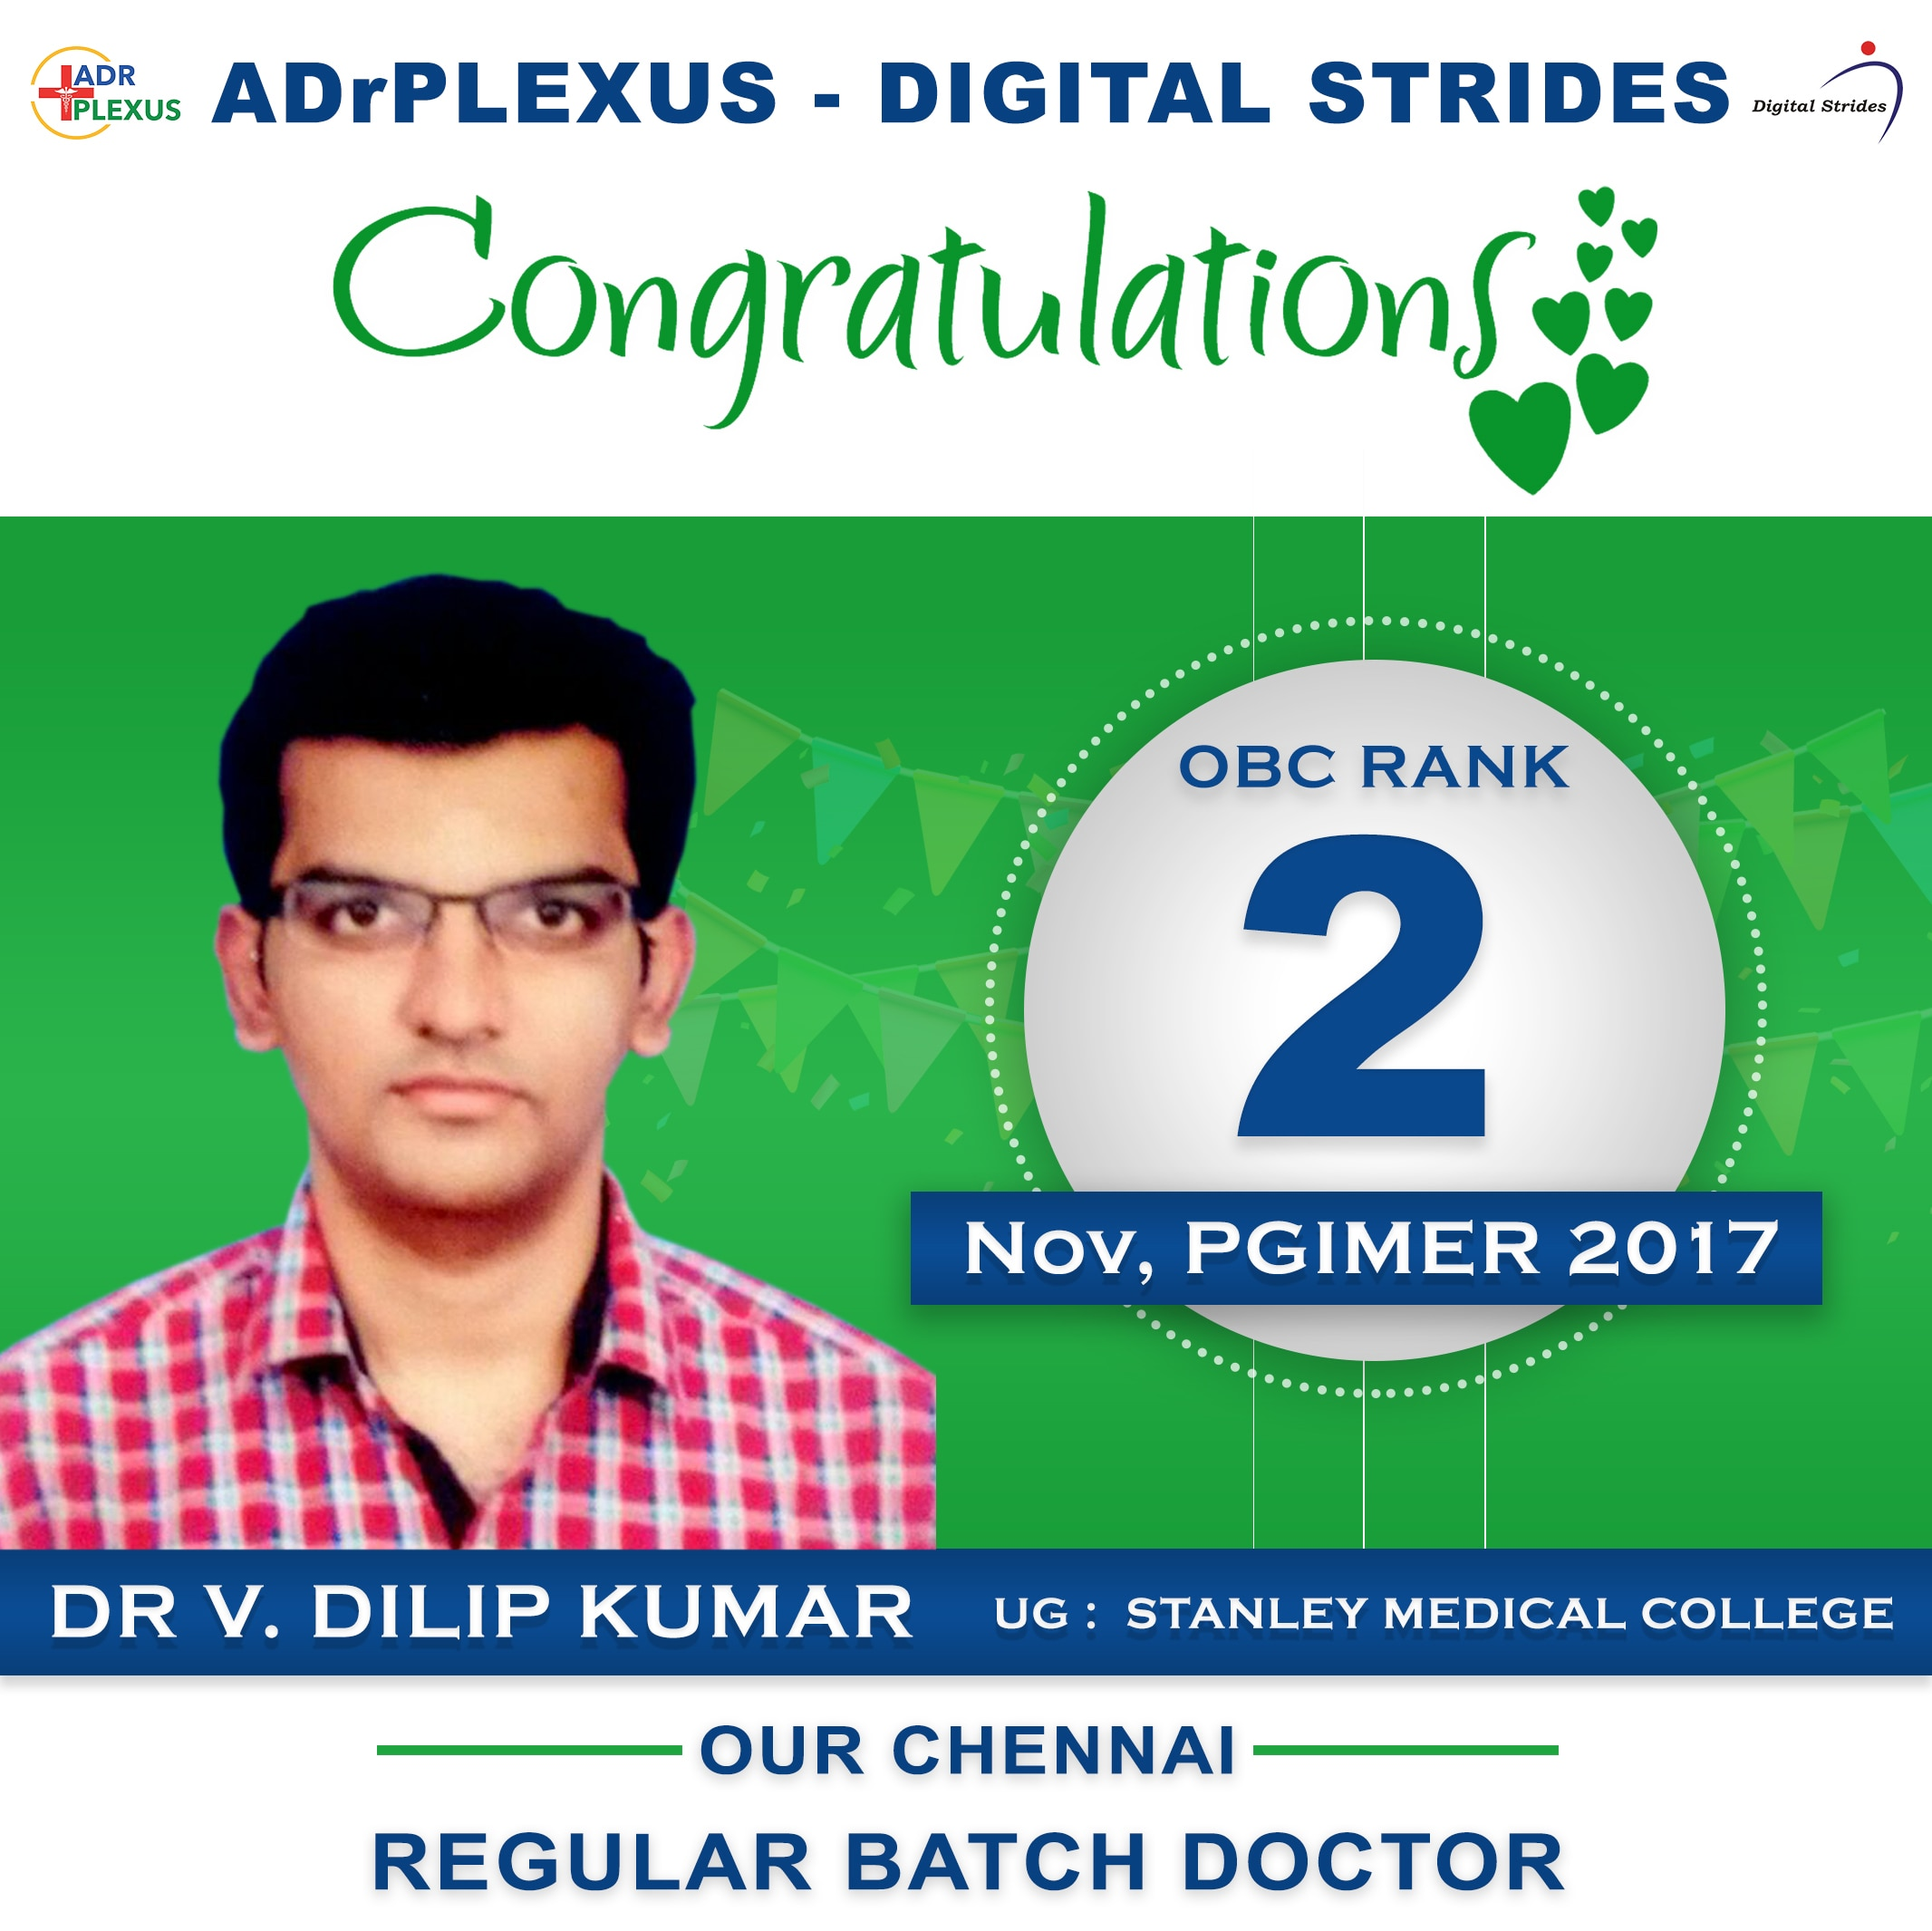 ADrPlexus Digital Strides Salutes Dr DILIP KUMAR V ( UG Stanley Medical College ) for Securing RANK 2 ( OBC ) in NOV PGIMER 2017 PGMEE Exams. Stanley Medical College medicos will be proud of your marked achievement in central Institute Exaams